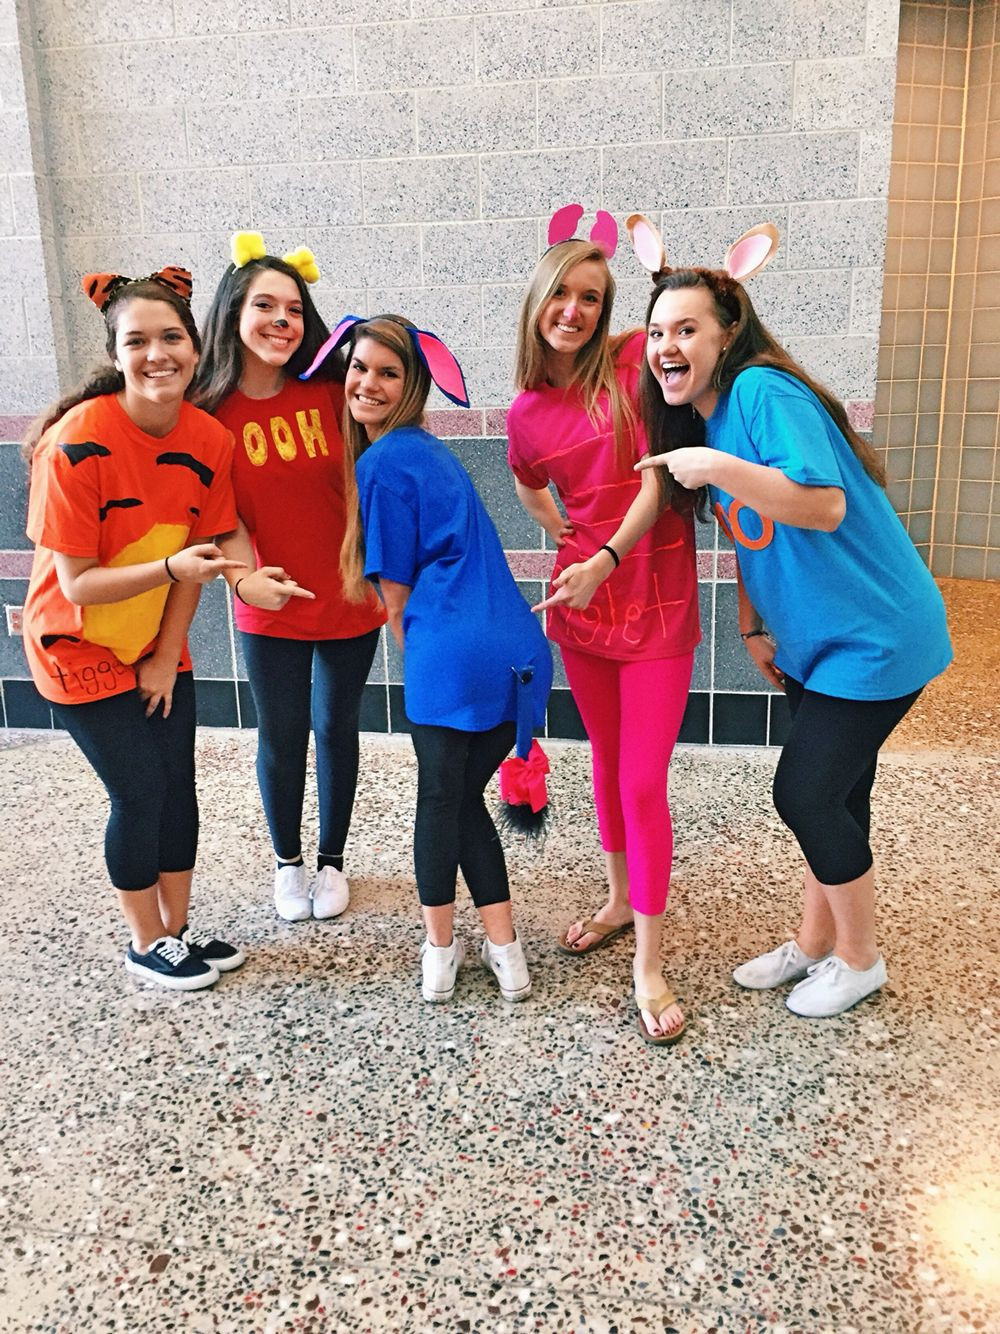 Best ideas about Winnie The Pooh Costume DIY . Save or Pin Winnie the Pooh character costumes Spirit week Now.